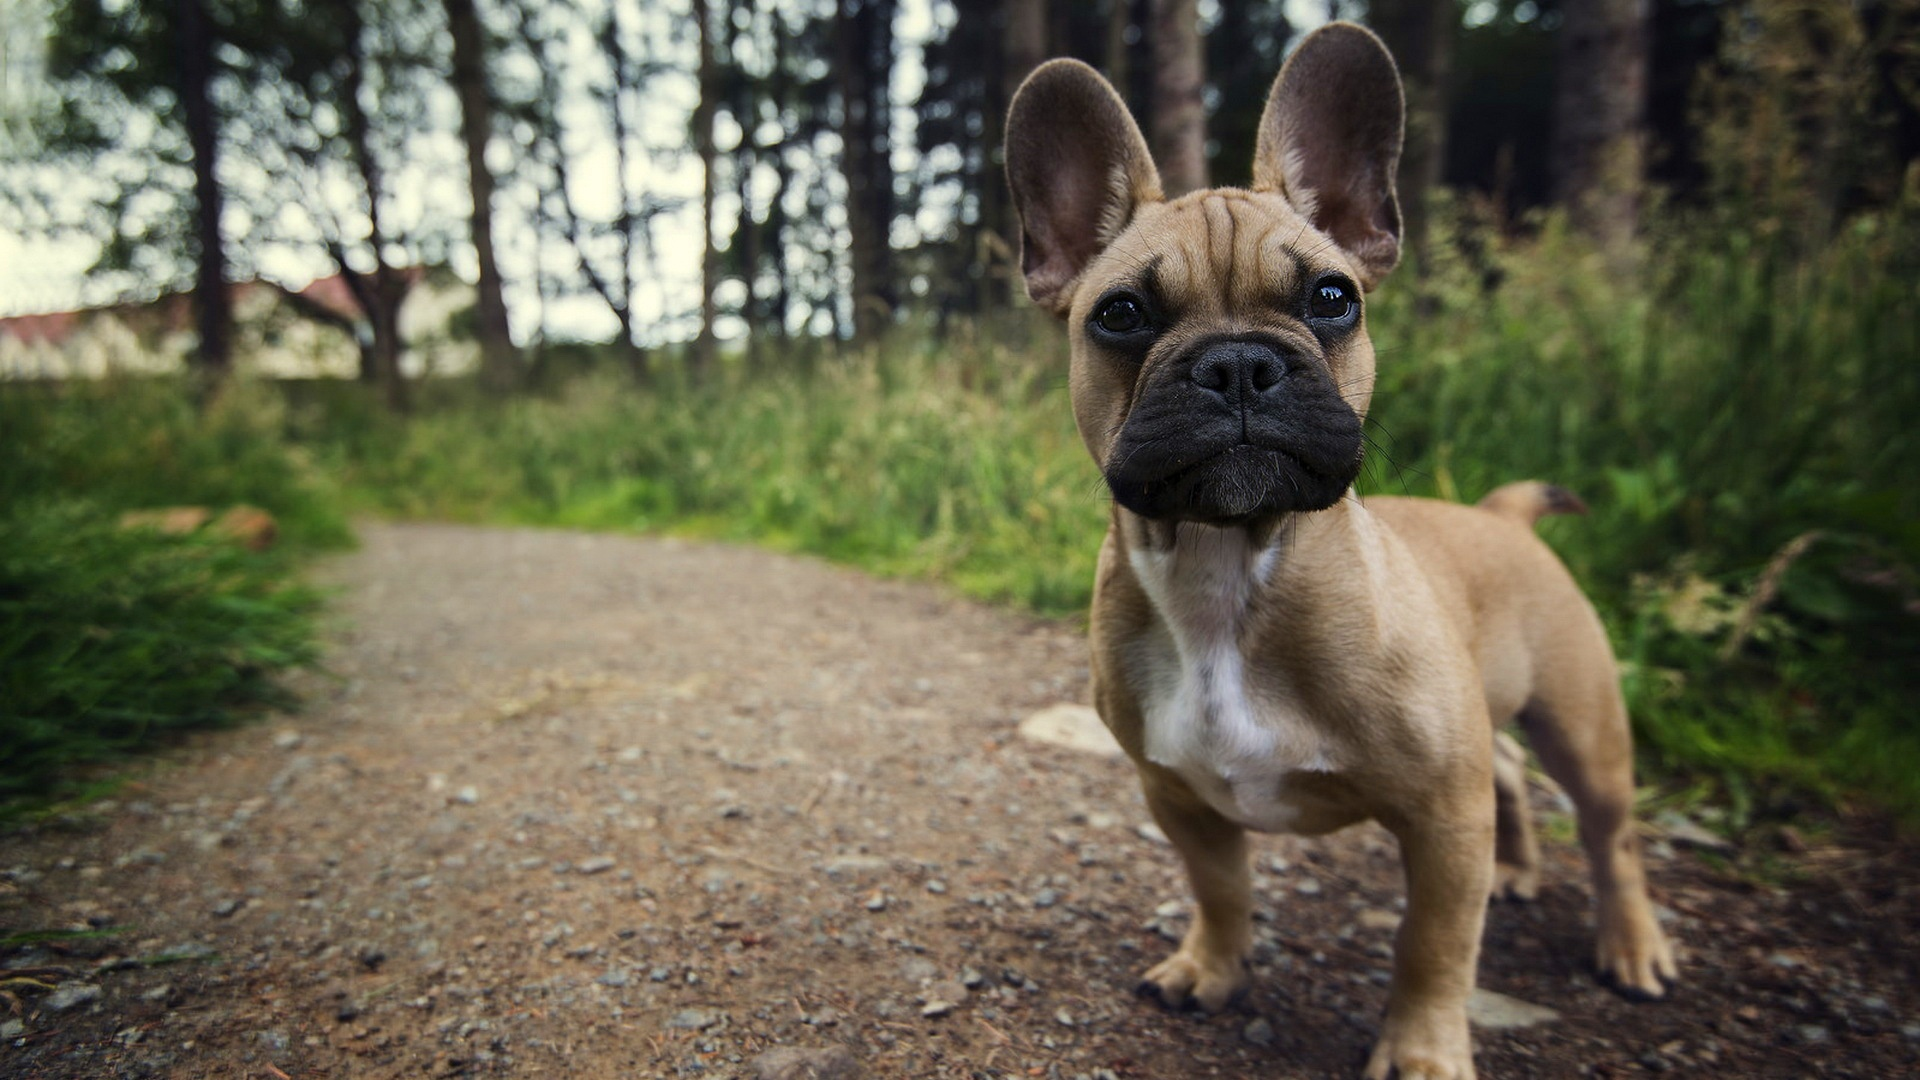 Download Hd Wallpapers Of Cute Puppies French Bulldog Wallpapers Hd Pixelstalk Net